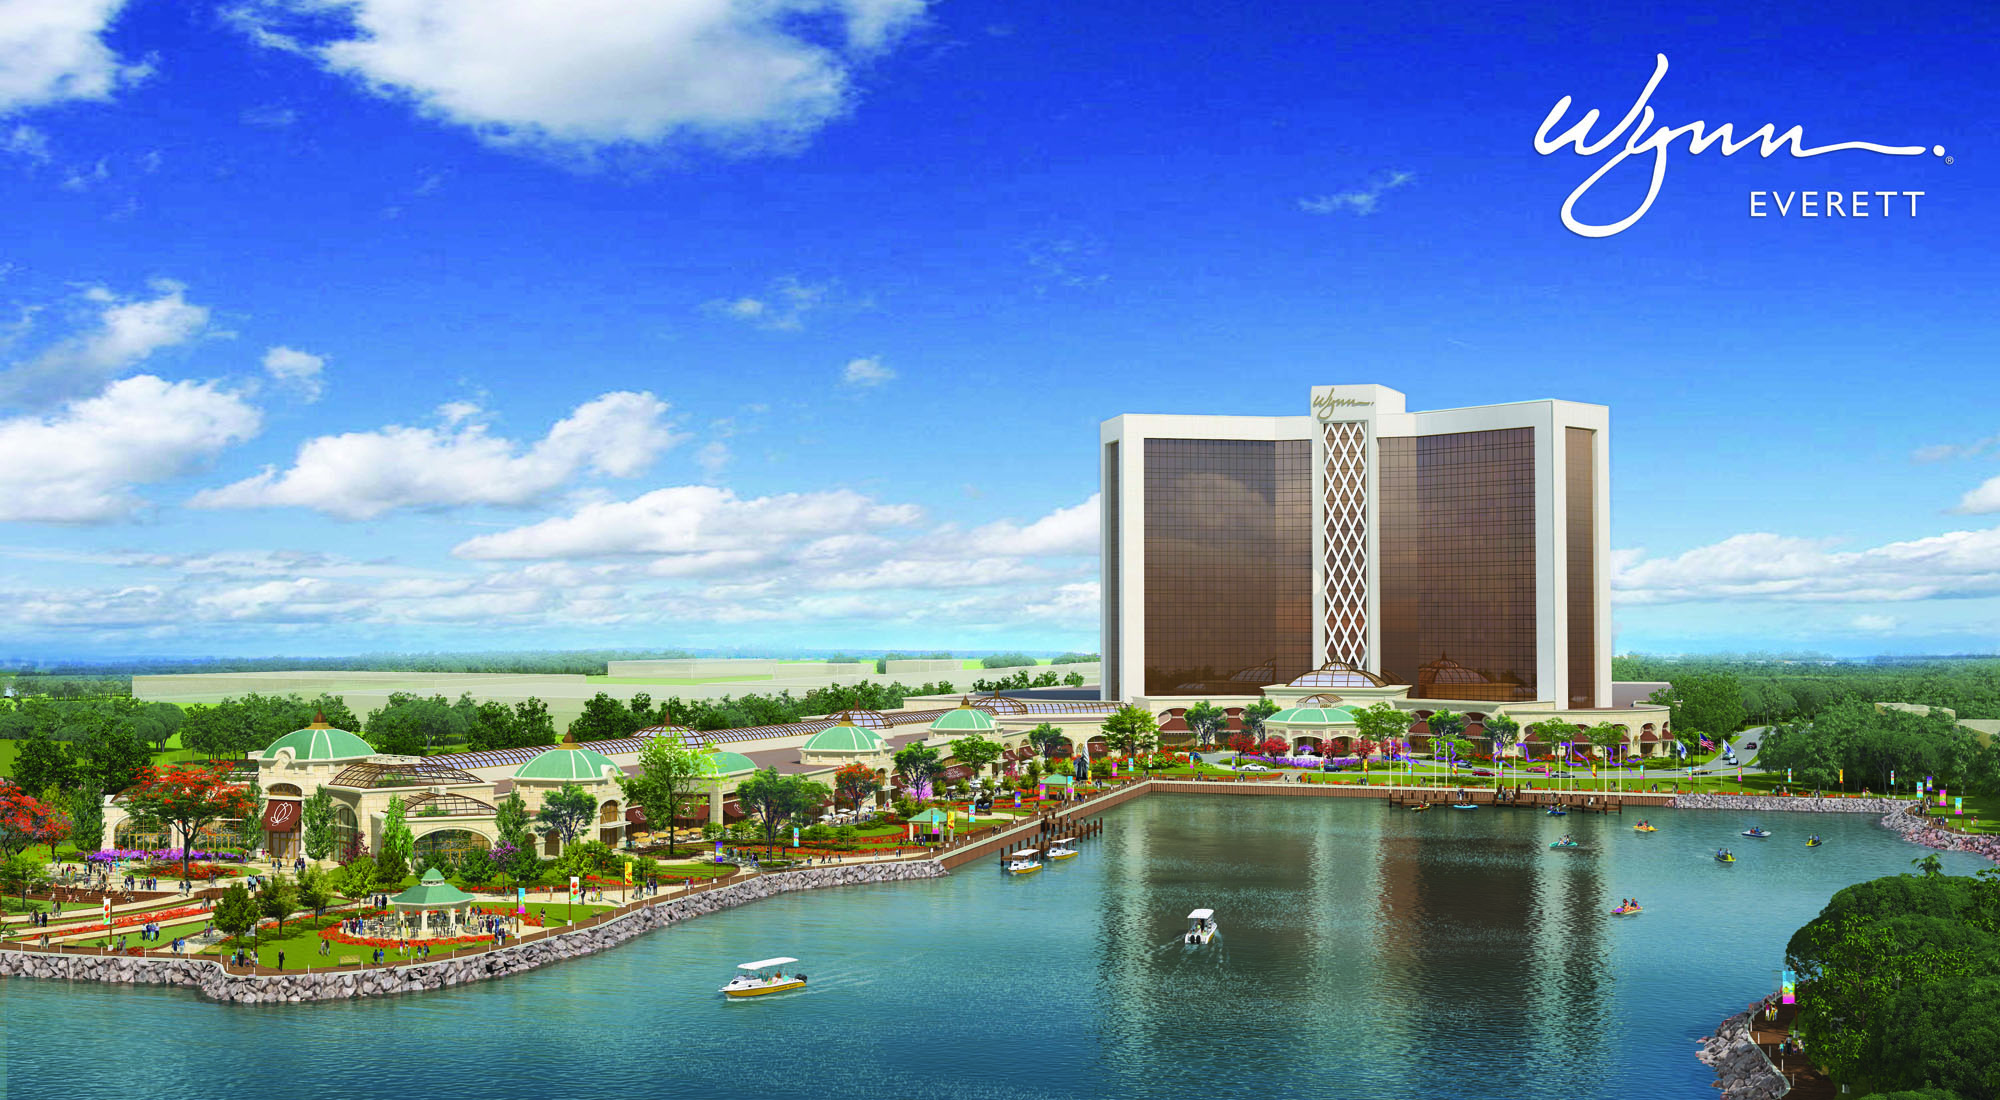 Proposed Wynn Everett Casino